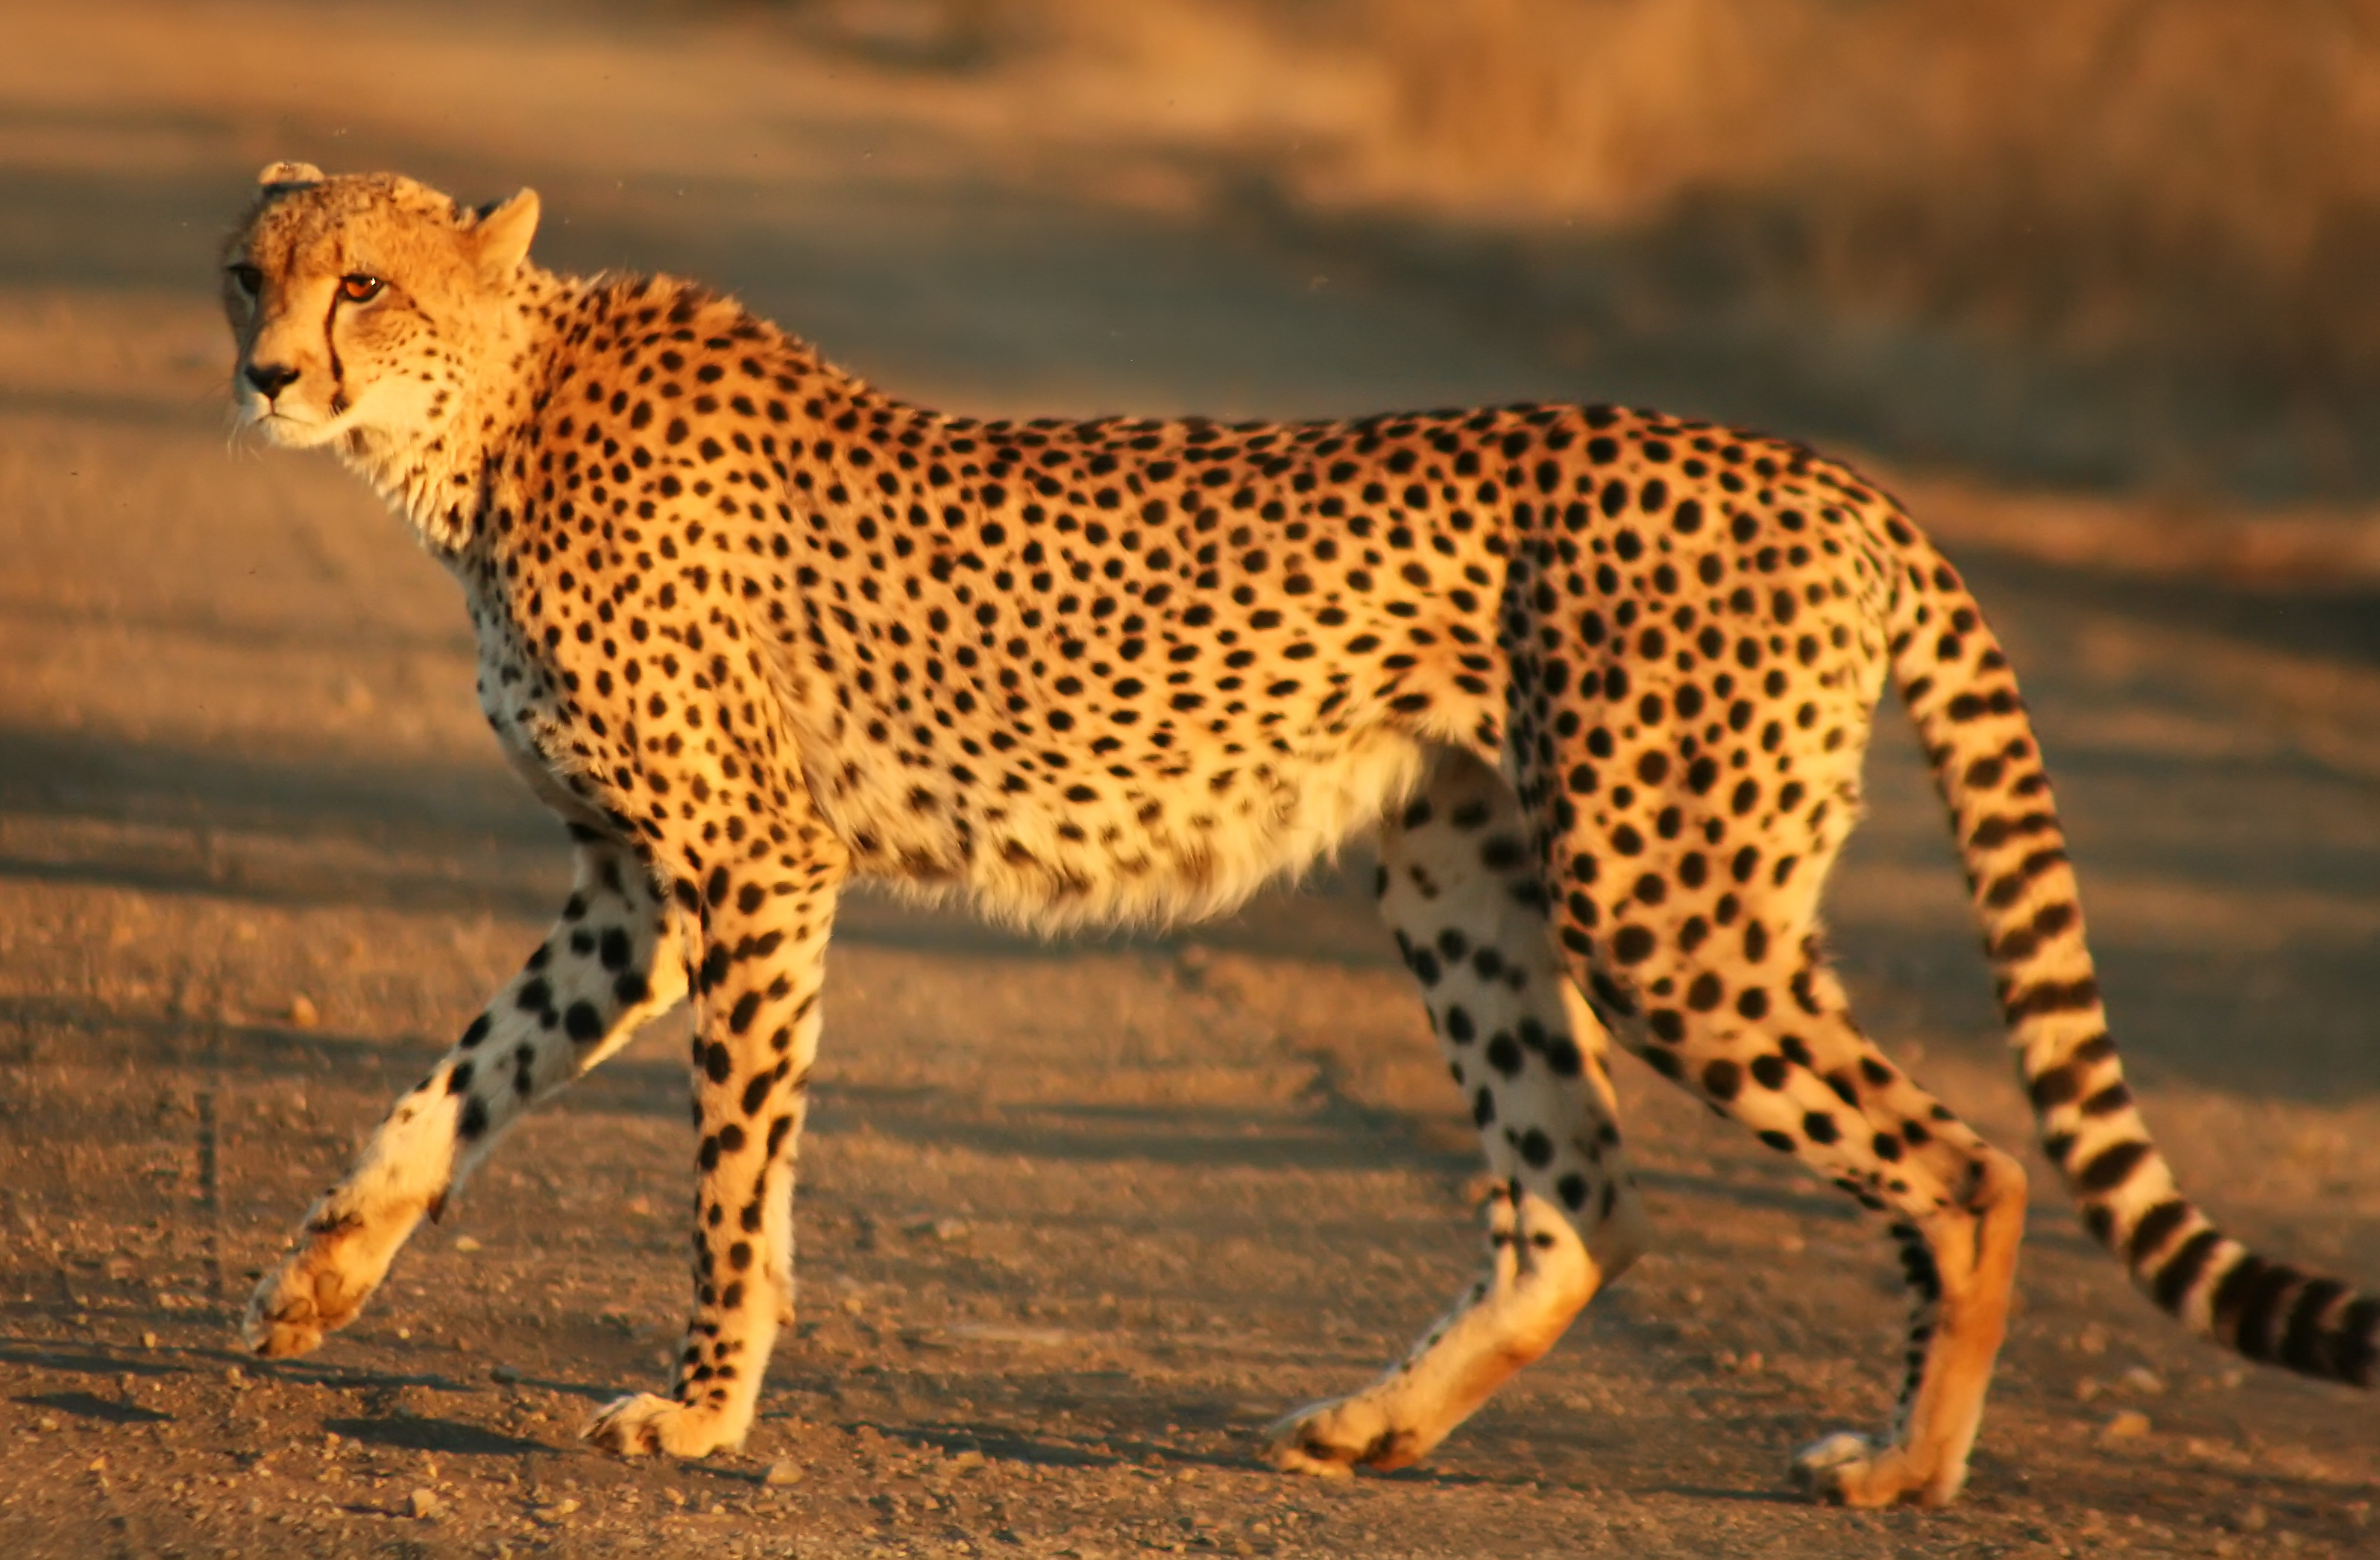 Cheetah - Wikipedia